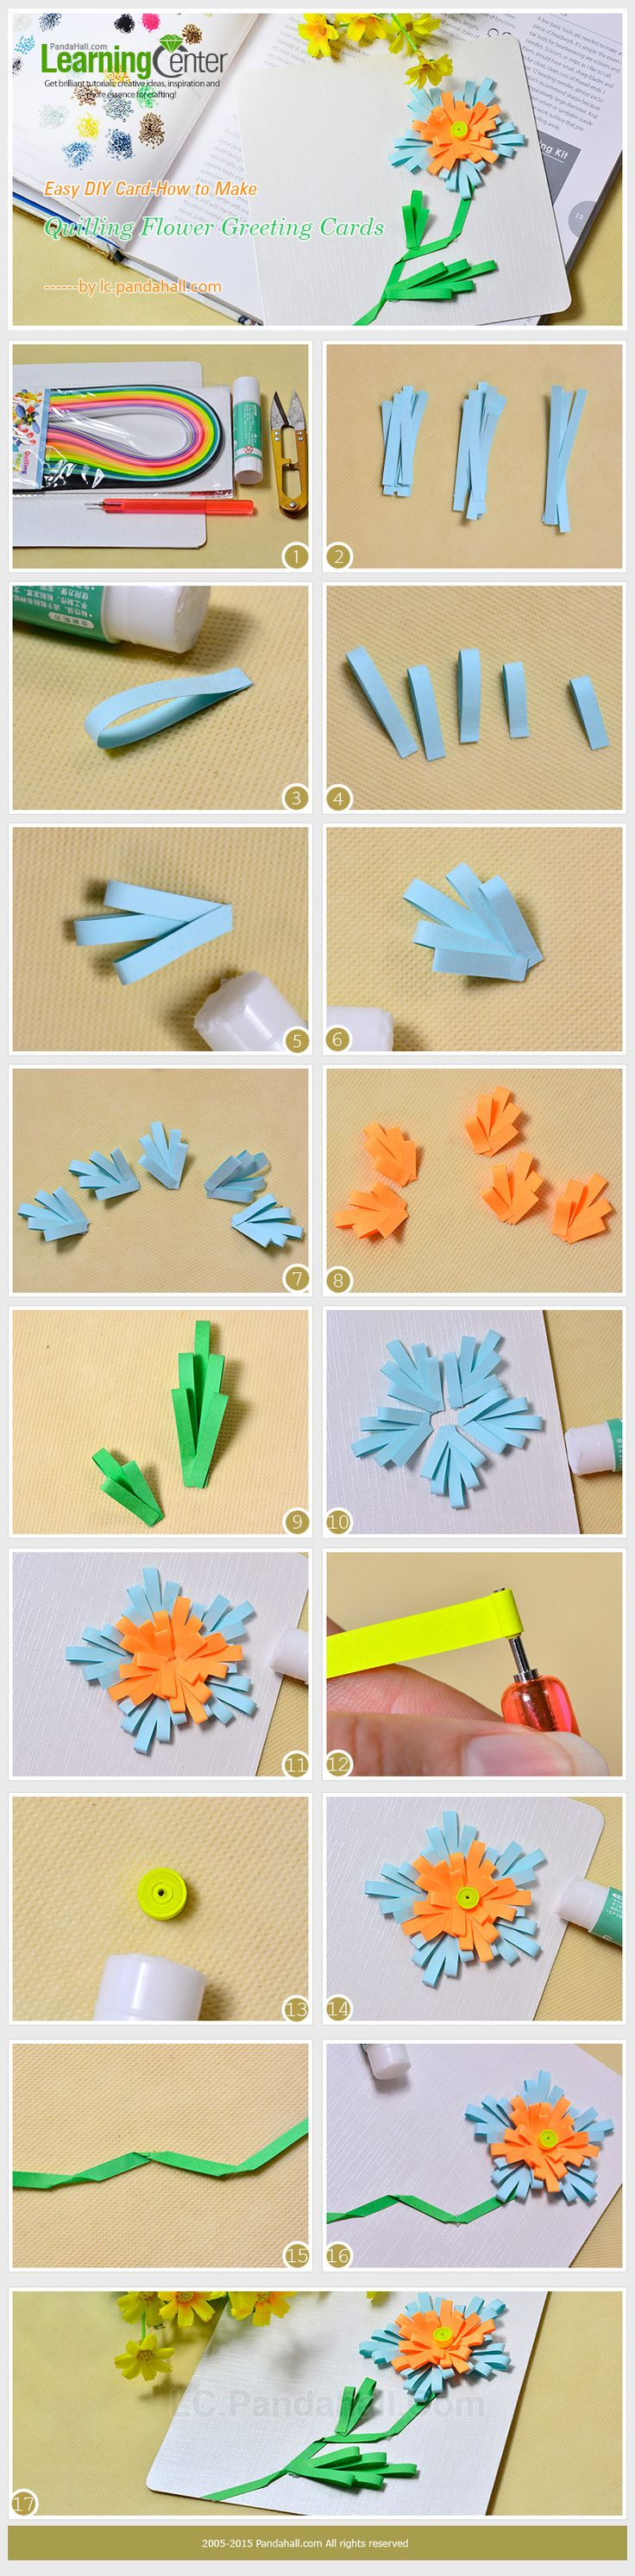 364 best Paper and Origami images on Pinterest